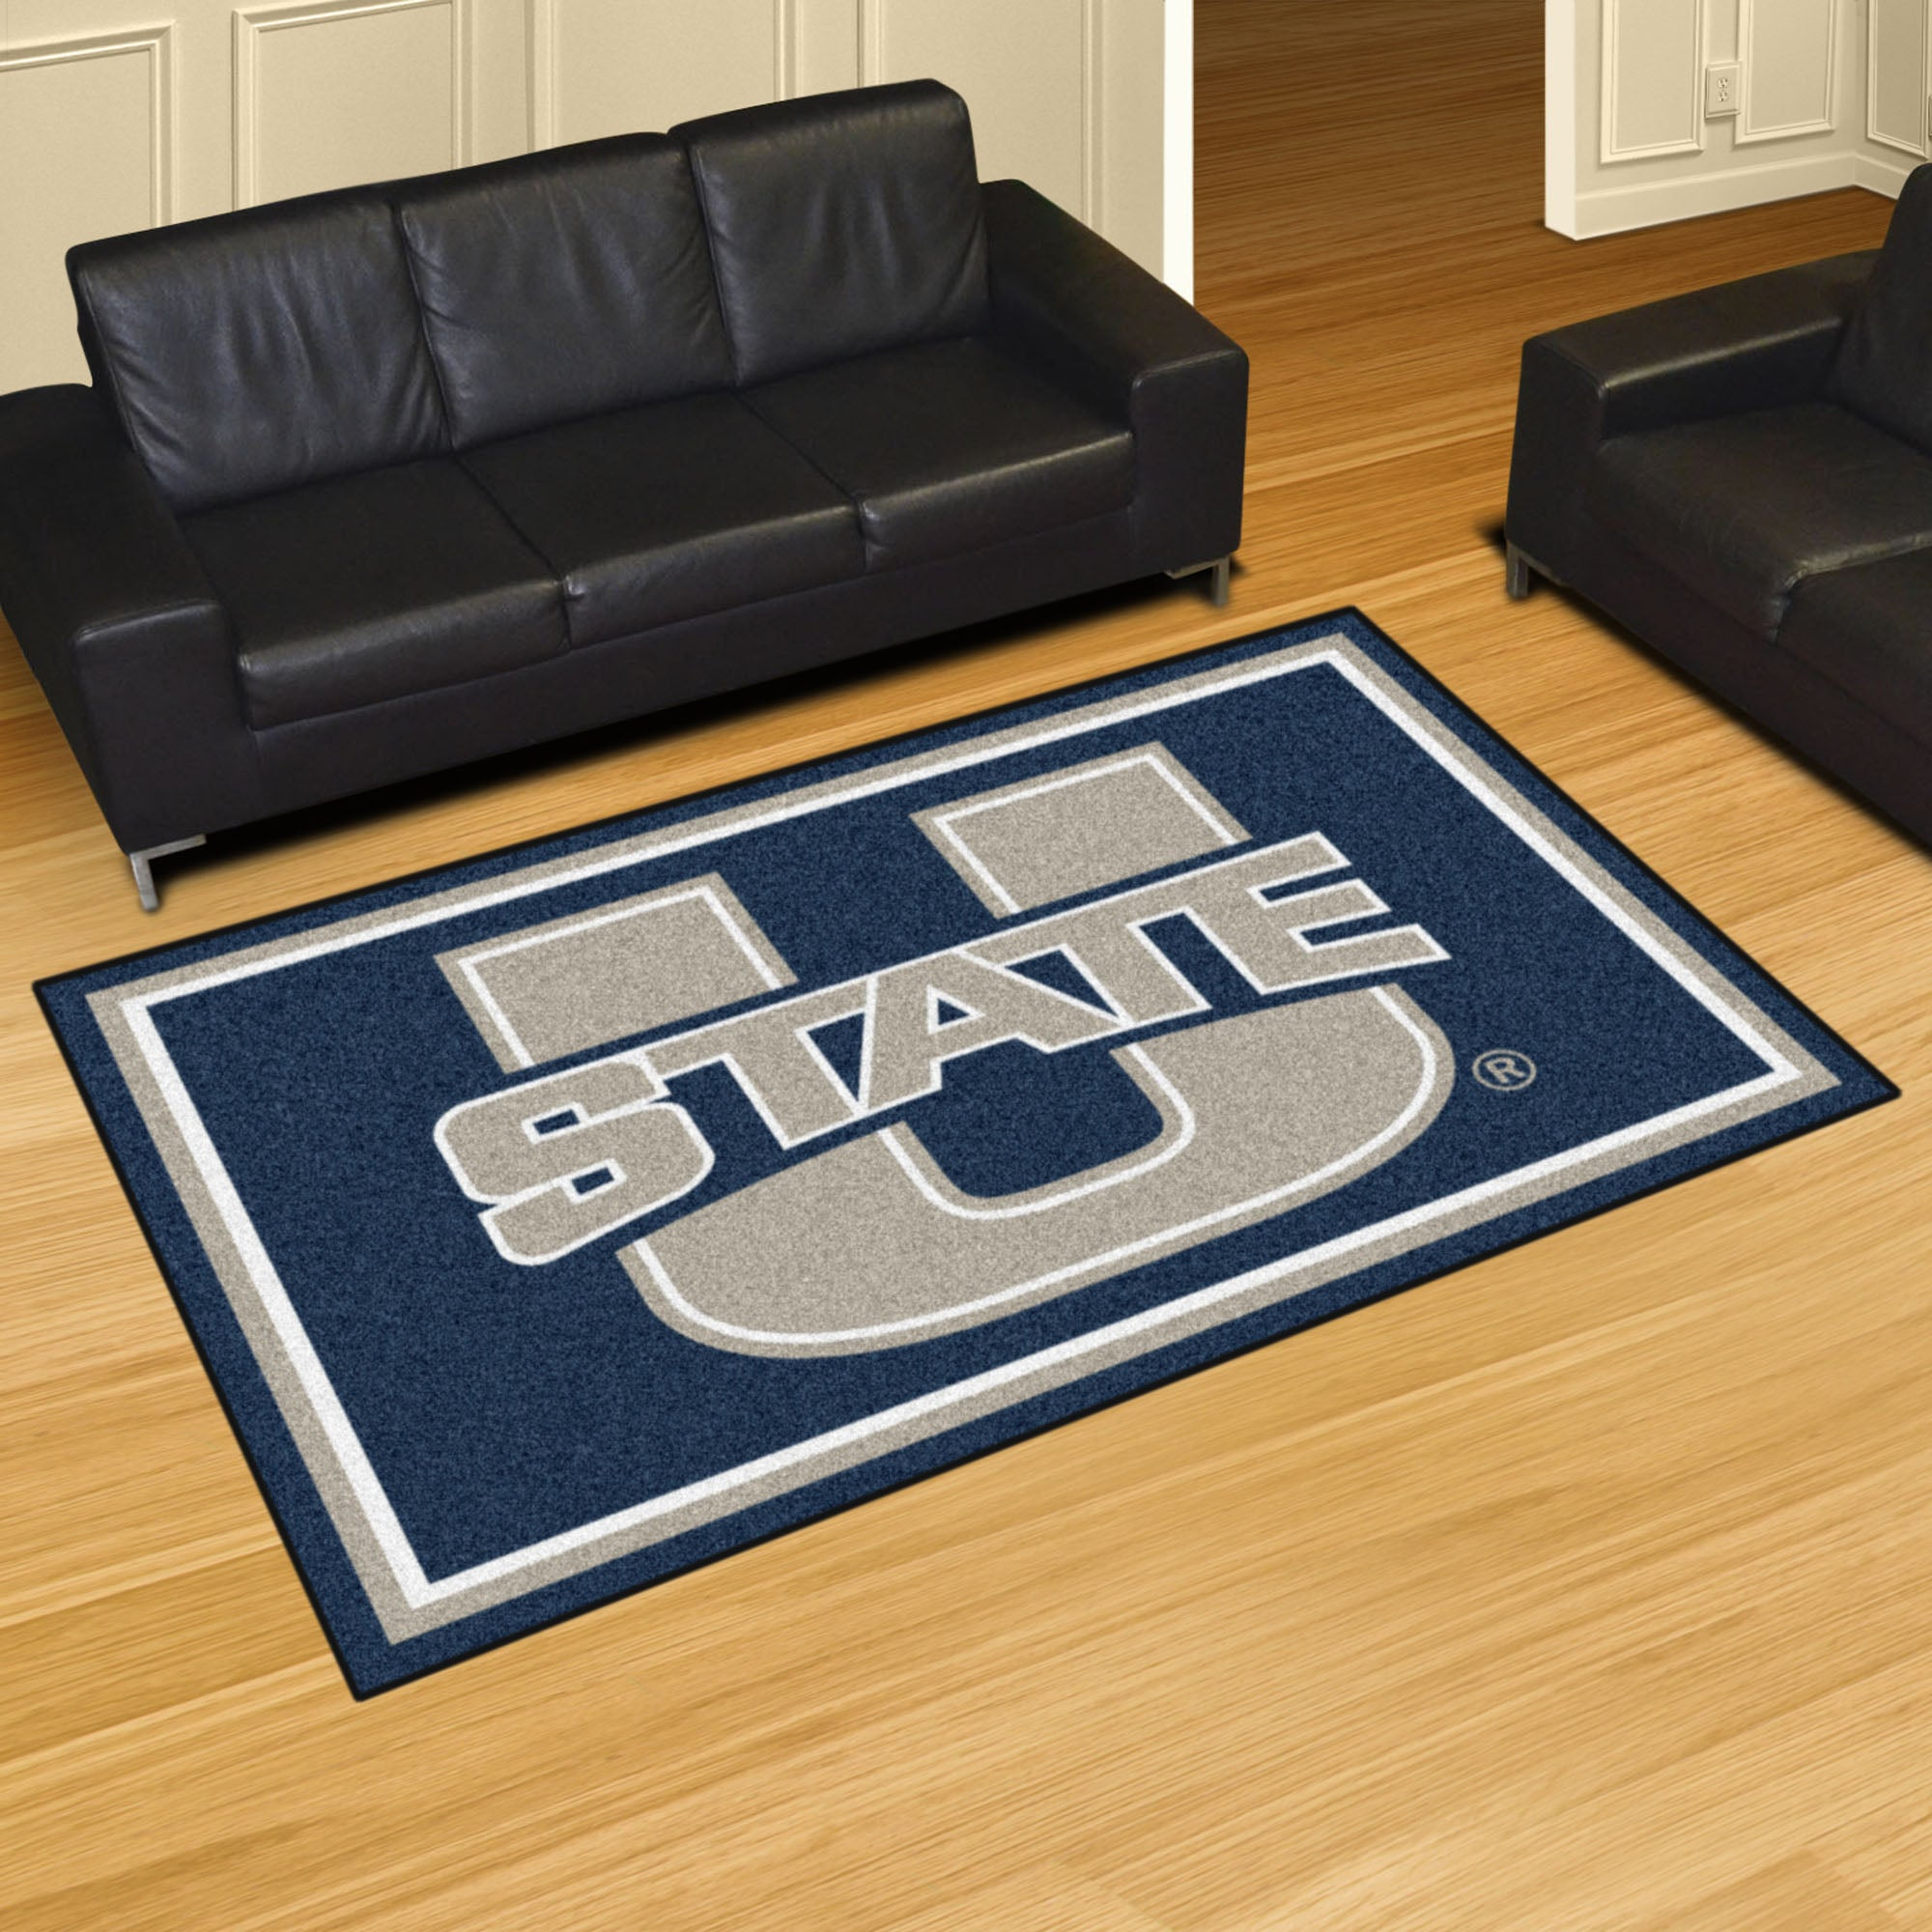 Utah State University Plush Rug  College Area Rug - Fan Rugs